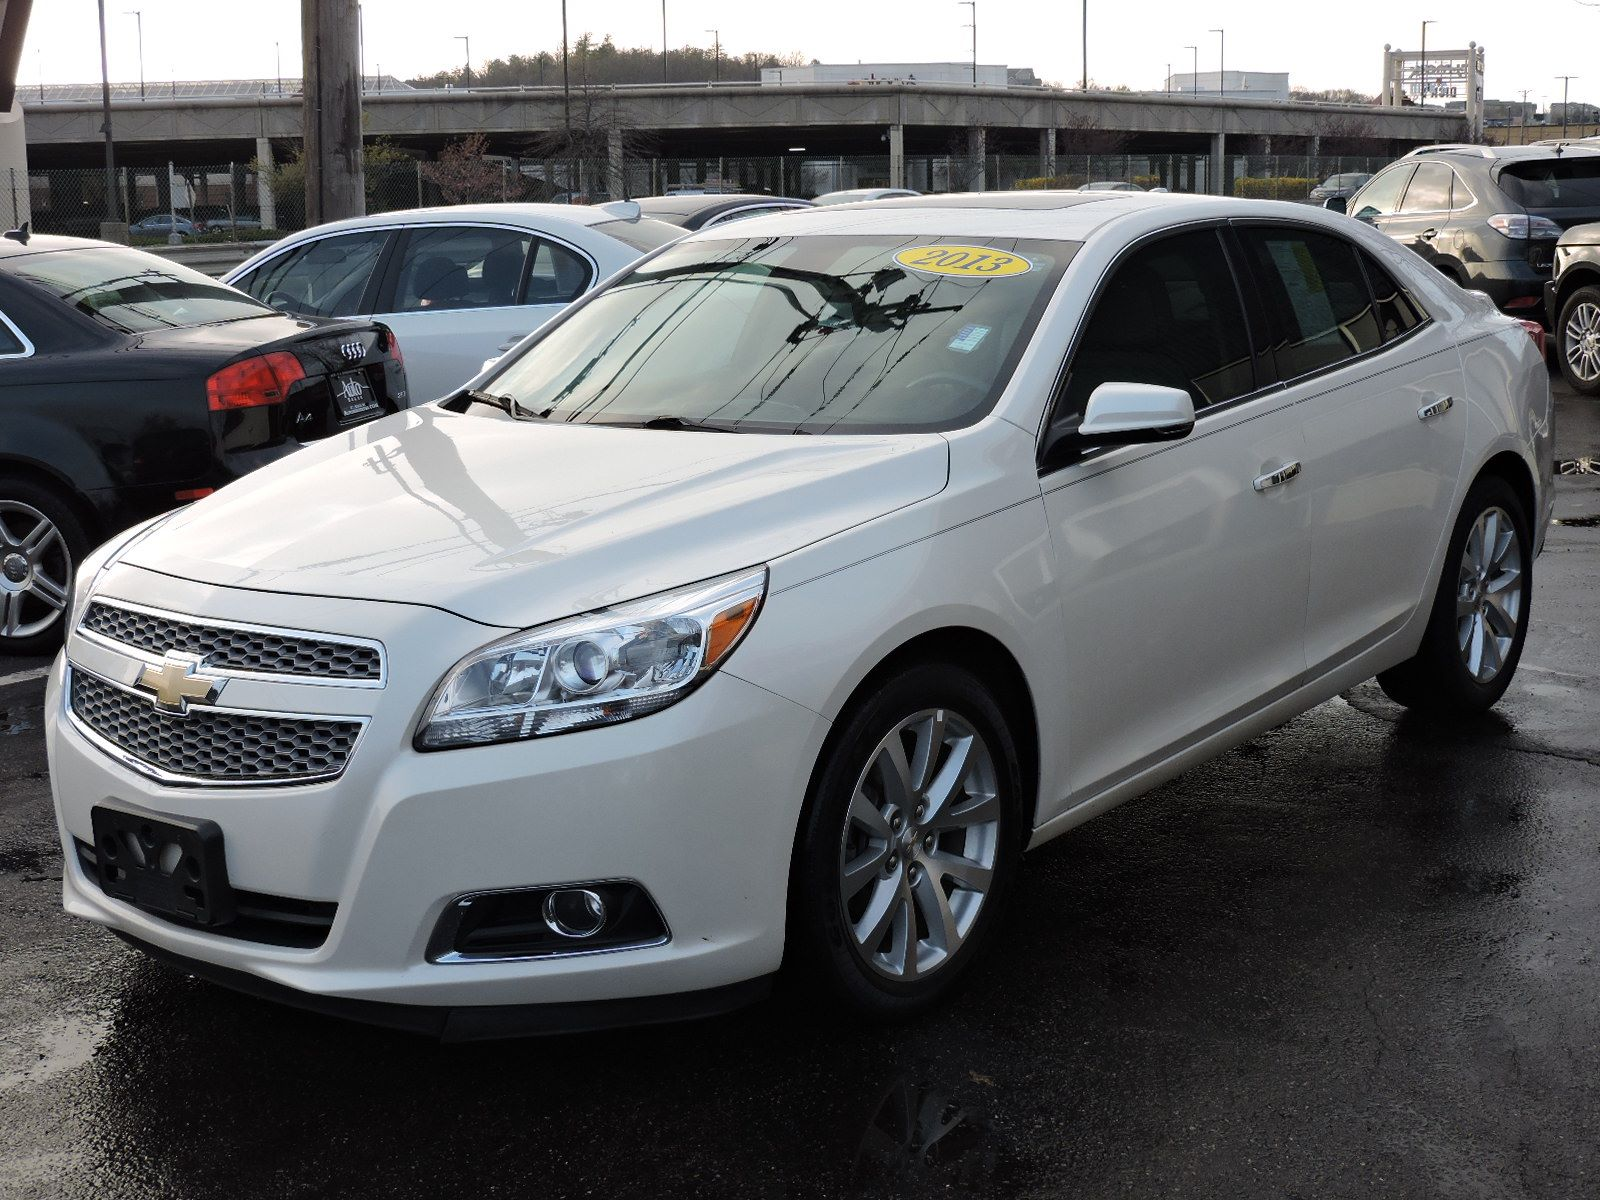 malibu chevrolet for used sale carfax photos with